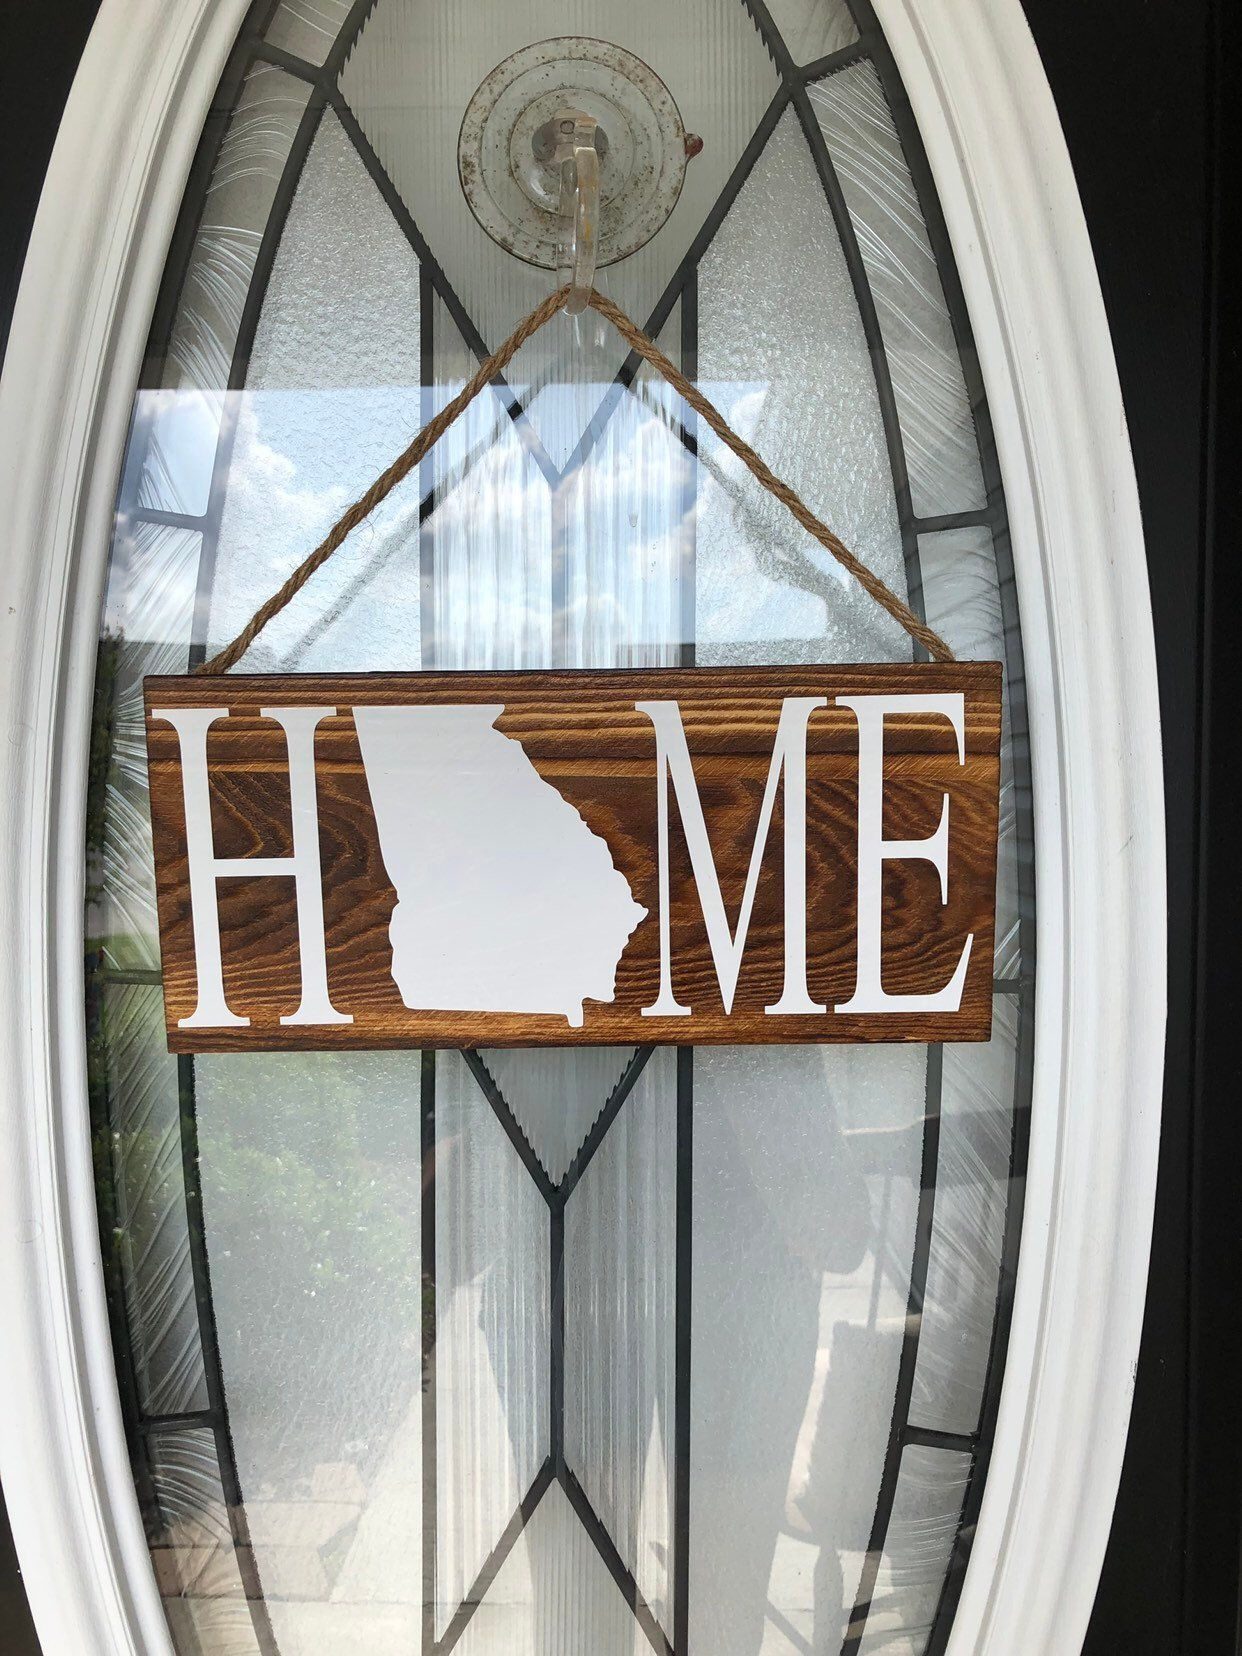 Excited to share this item from my etsy shop home state